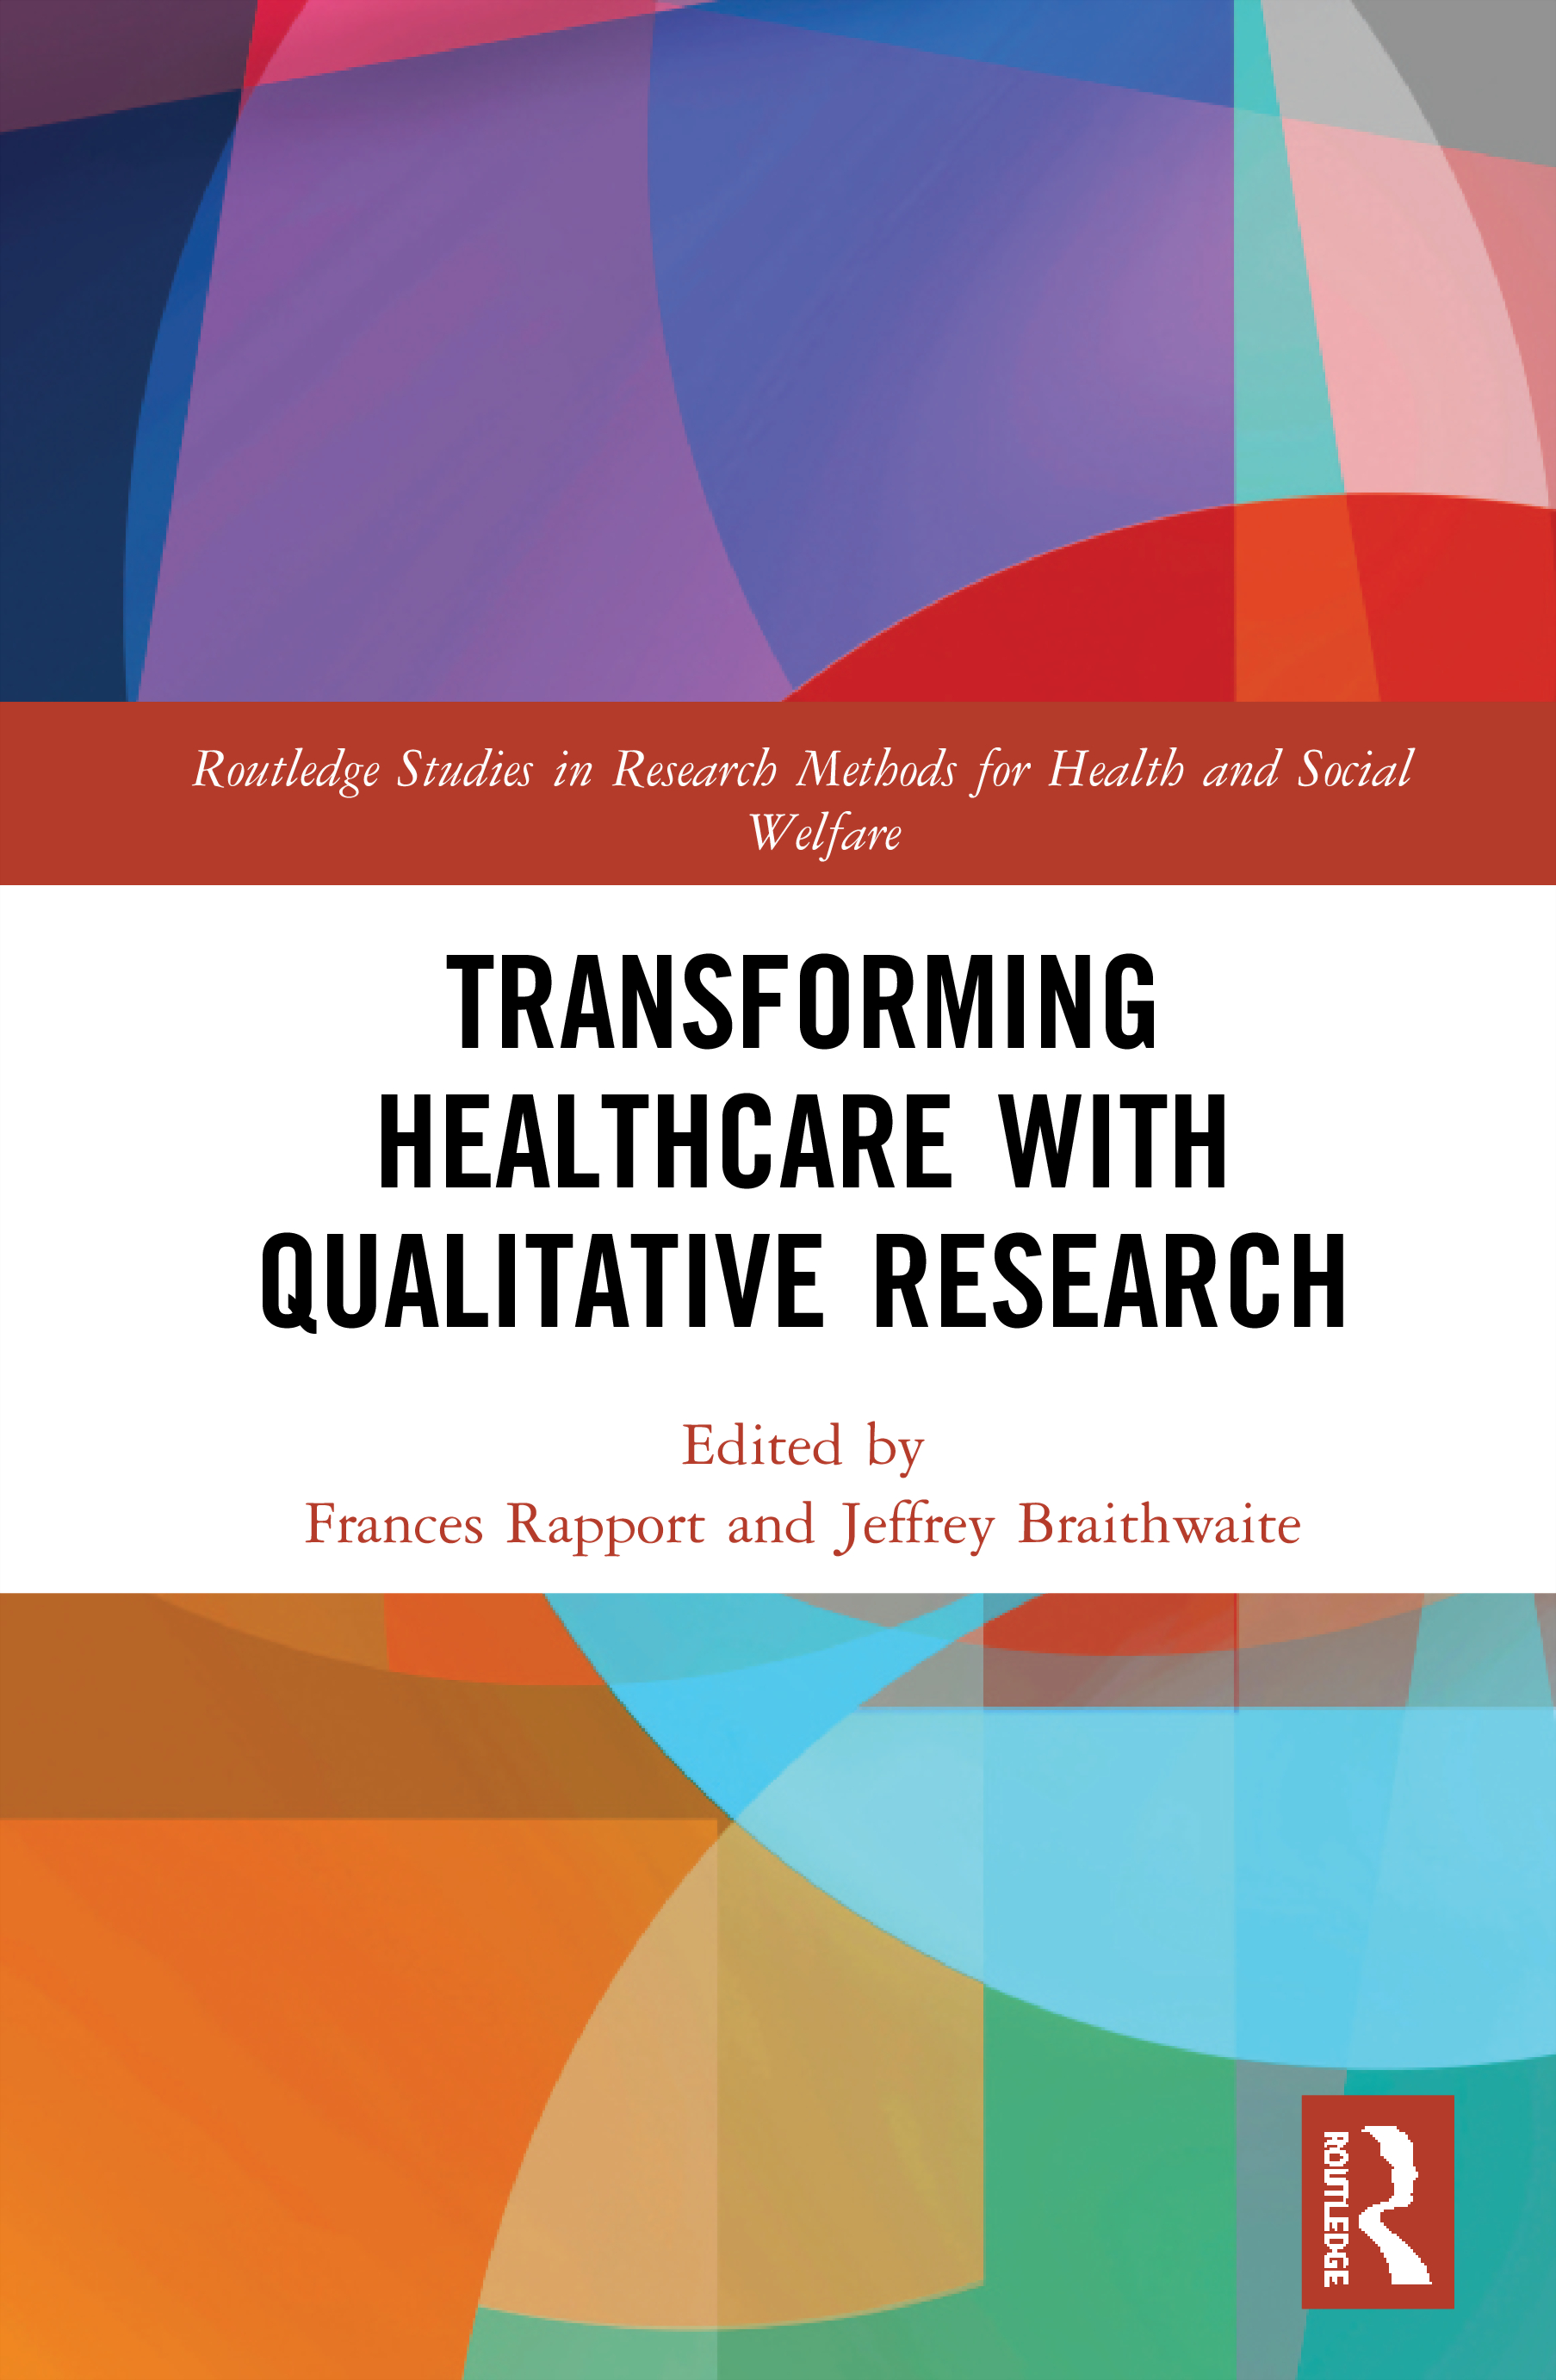 Qualitative evidence synthesis and conceptual development